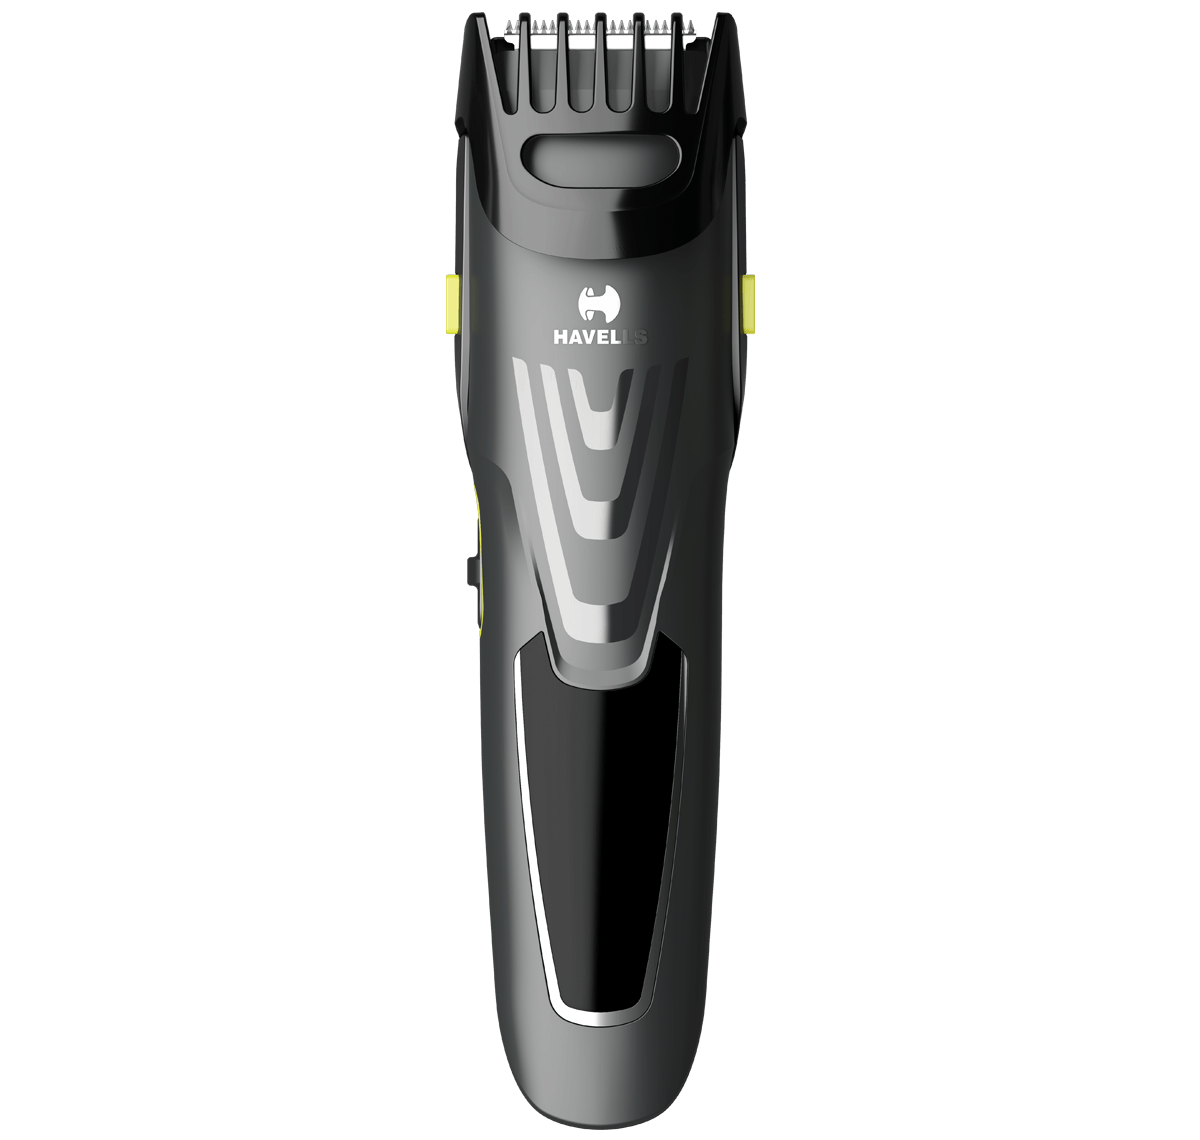 Zoom Wheel Beard Trimmer with 20 length settings